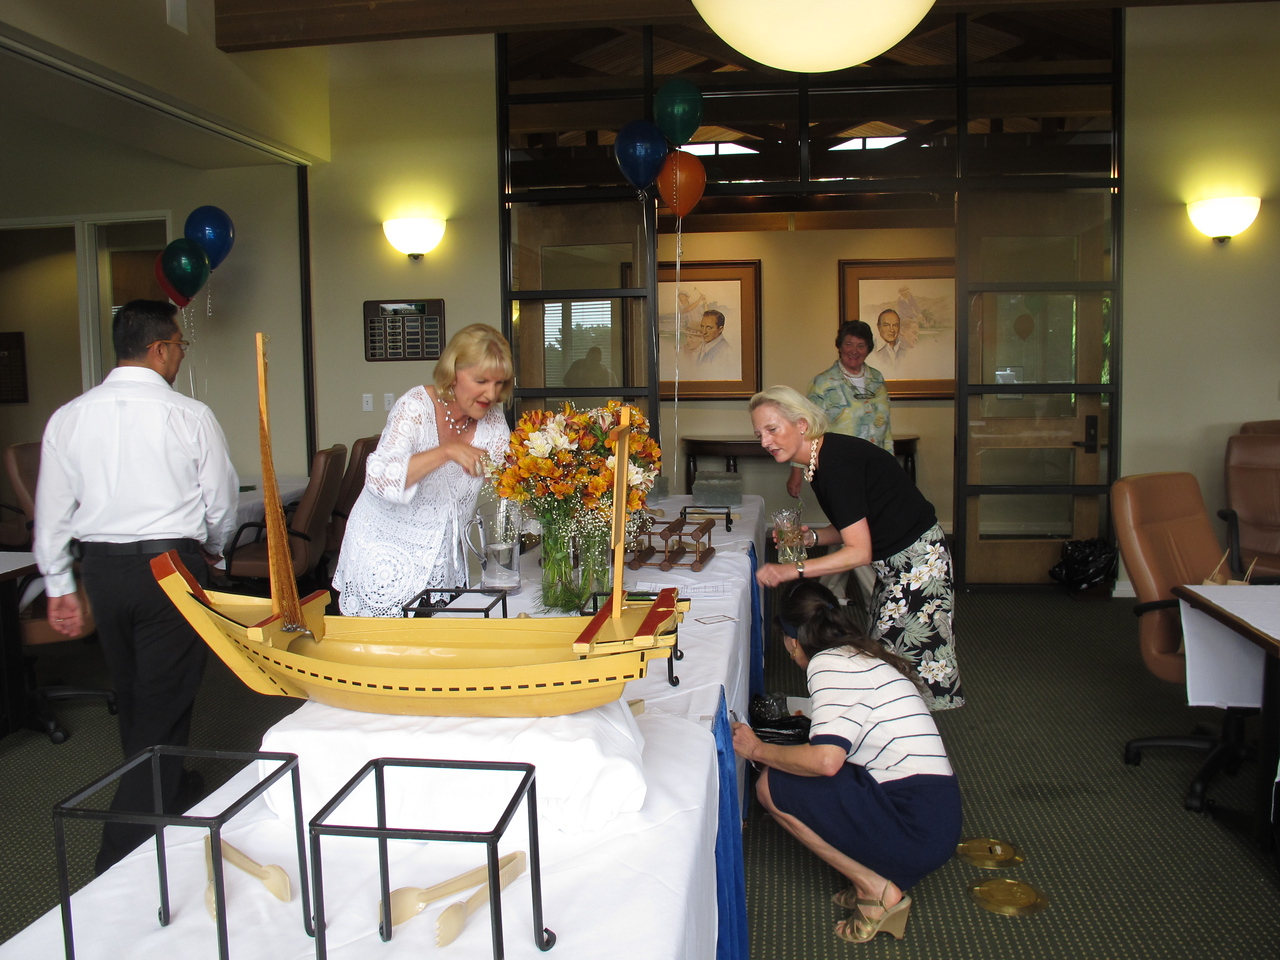 Jeannie Young and Kim Caneer put the finishing touches on the flowers while Marie-France looks on in approval.